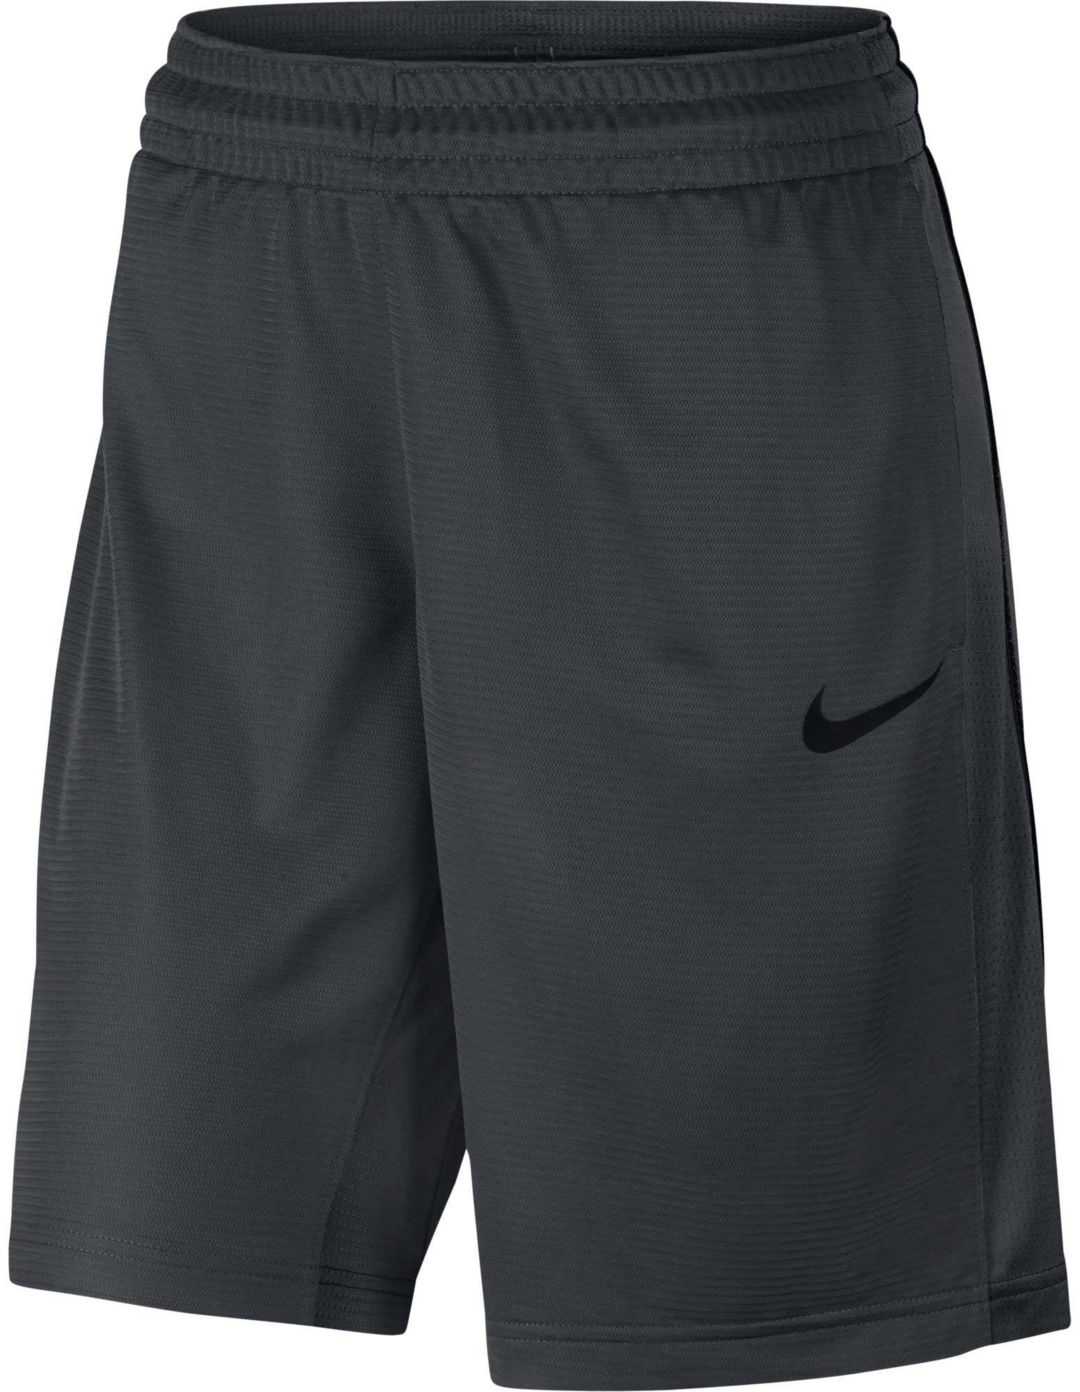 744d8d536f Nike Women's 10'' Dry Essential Basketball Shorts